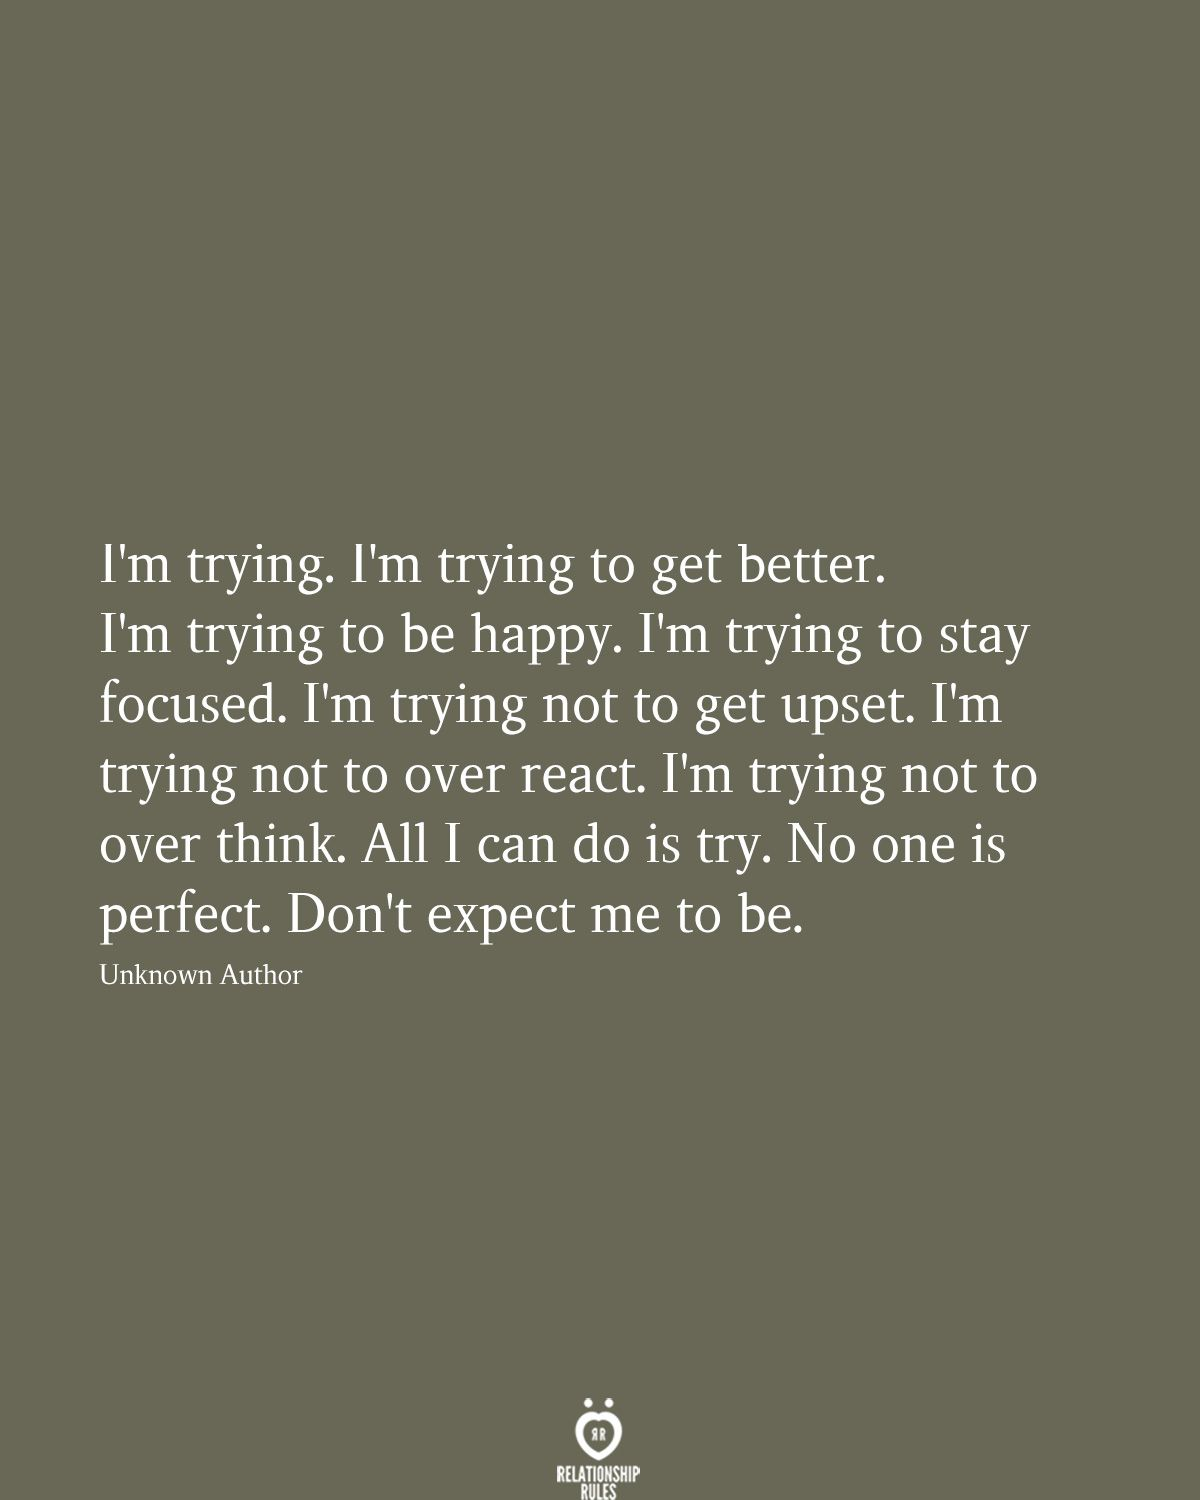 I'm Trying. I'm Trying To Get Better.